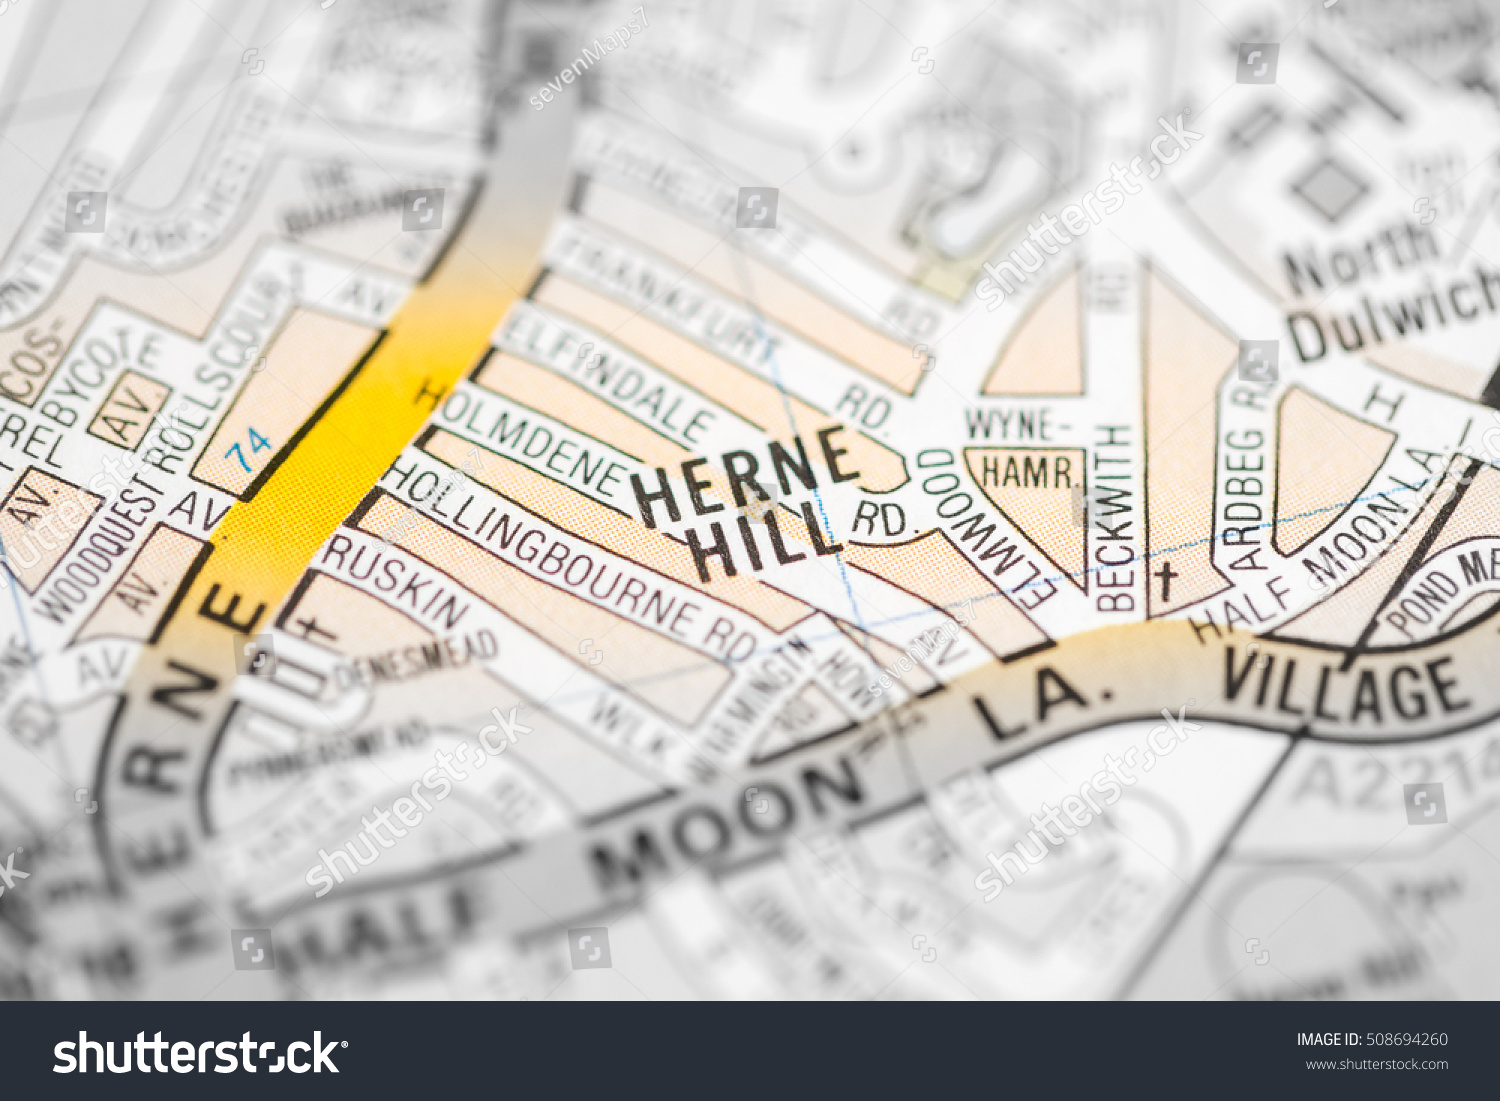 Herne Hill London Uk Map Stock Photo 508694260 Shutterstock